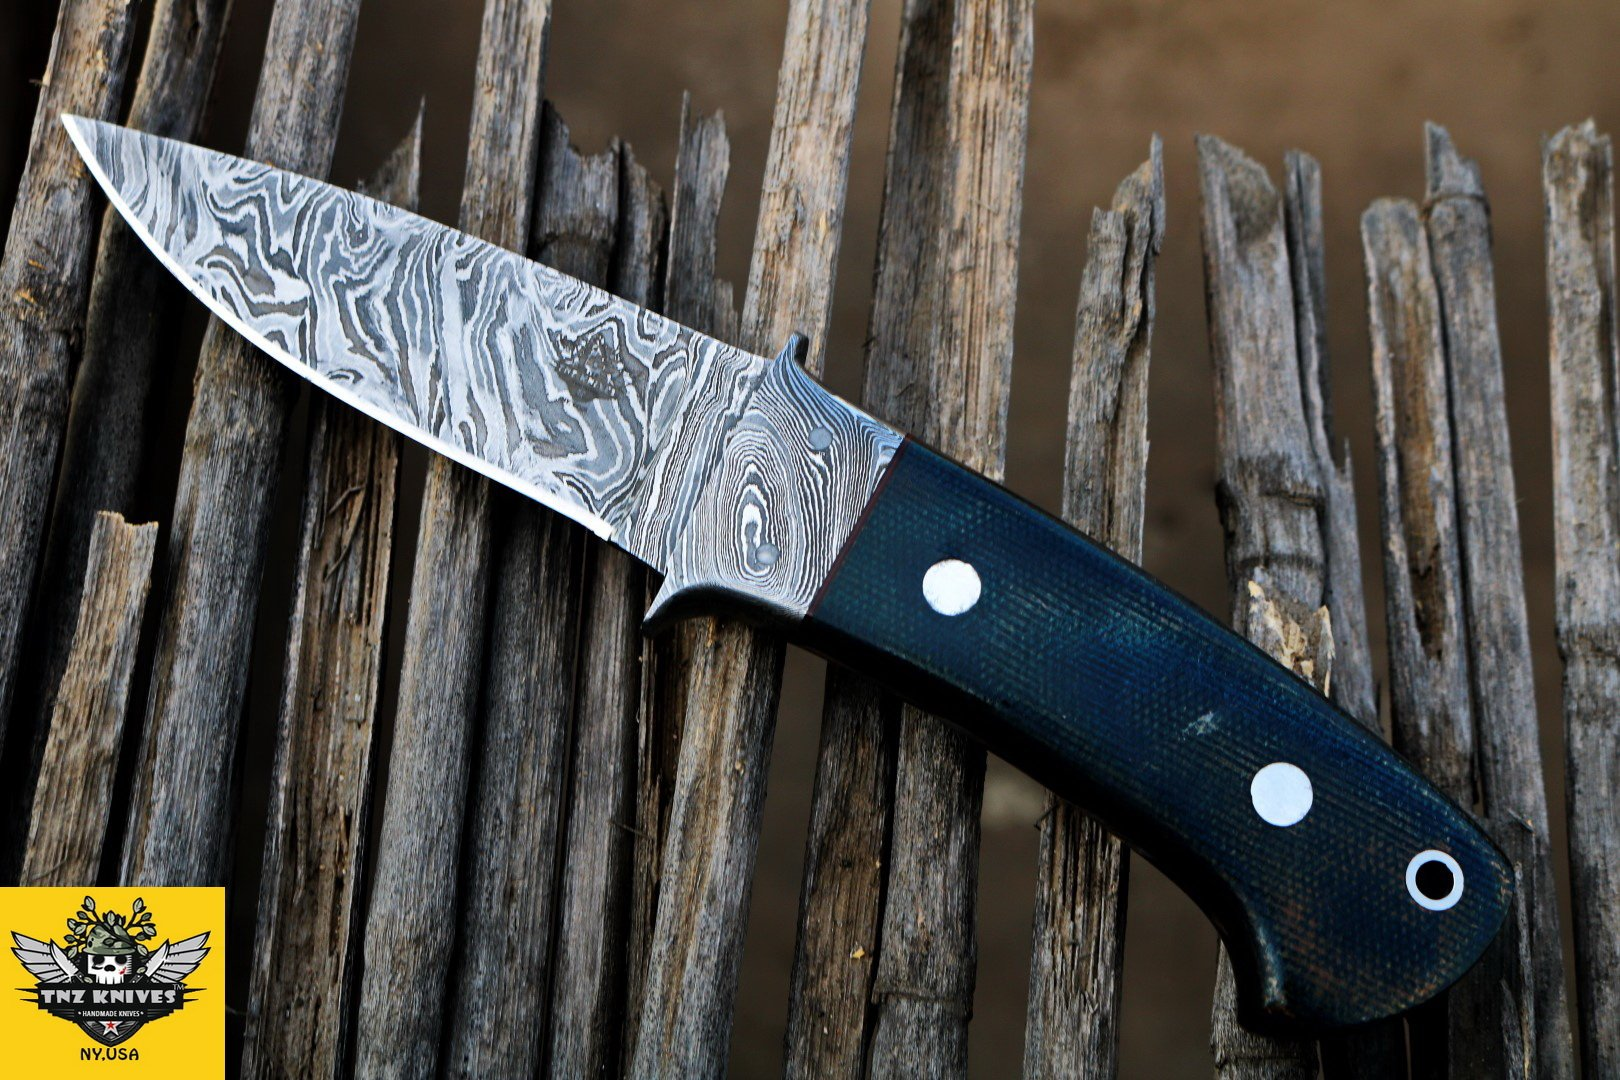 """TNZ-128 USA Damascus Knife 7.2″ Long 3.2″Blade """" 3.8oz Hunting Camping Damascus knife Bowie Hunting Skinner Survival Outdoor Knife With Leather Cover TNZ Hand Made Damascus knives"""